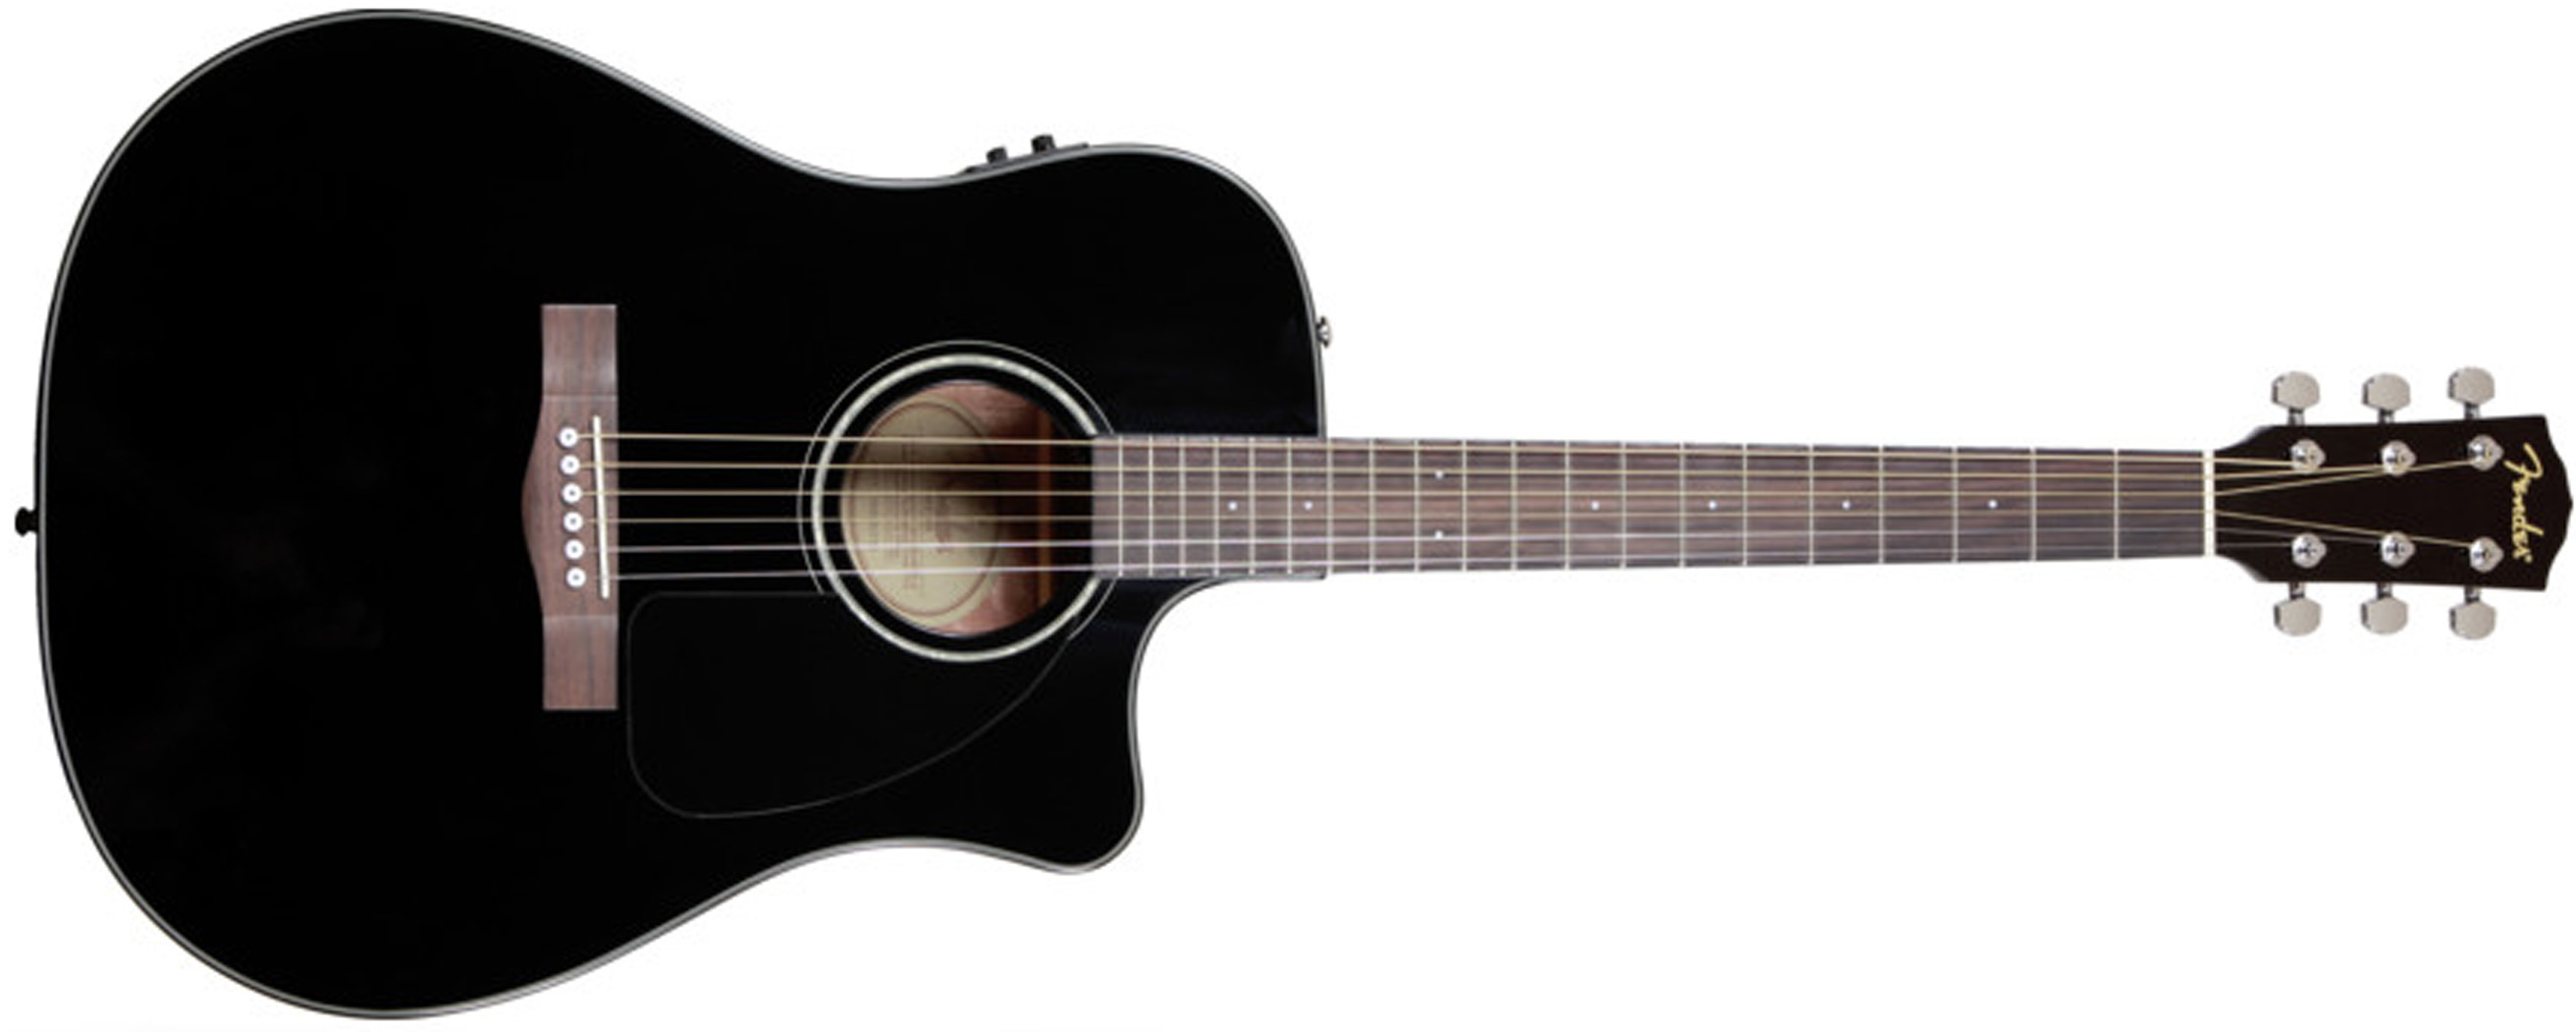 6 Acoustic Guitars That Are Perfect For Beginners